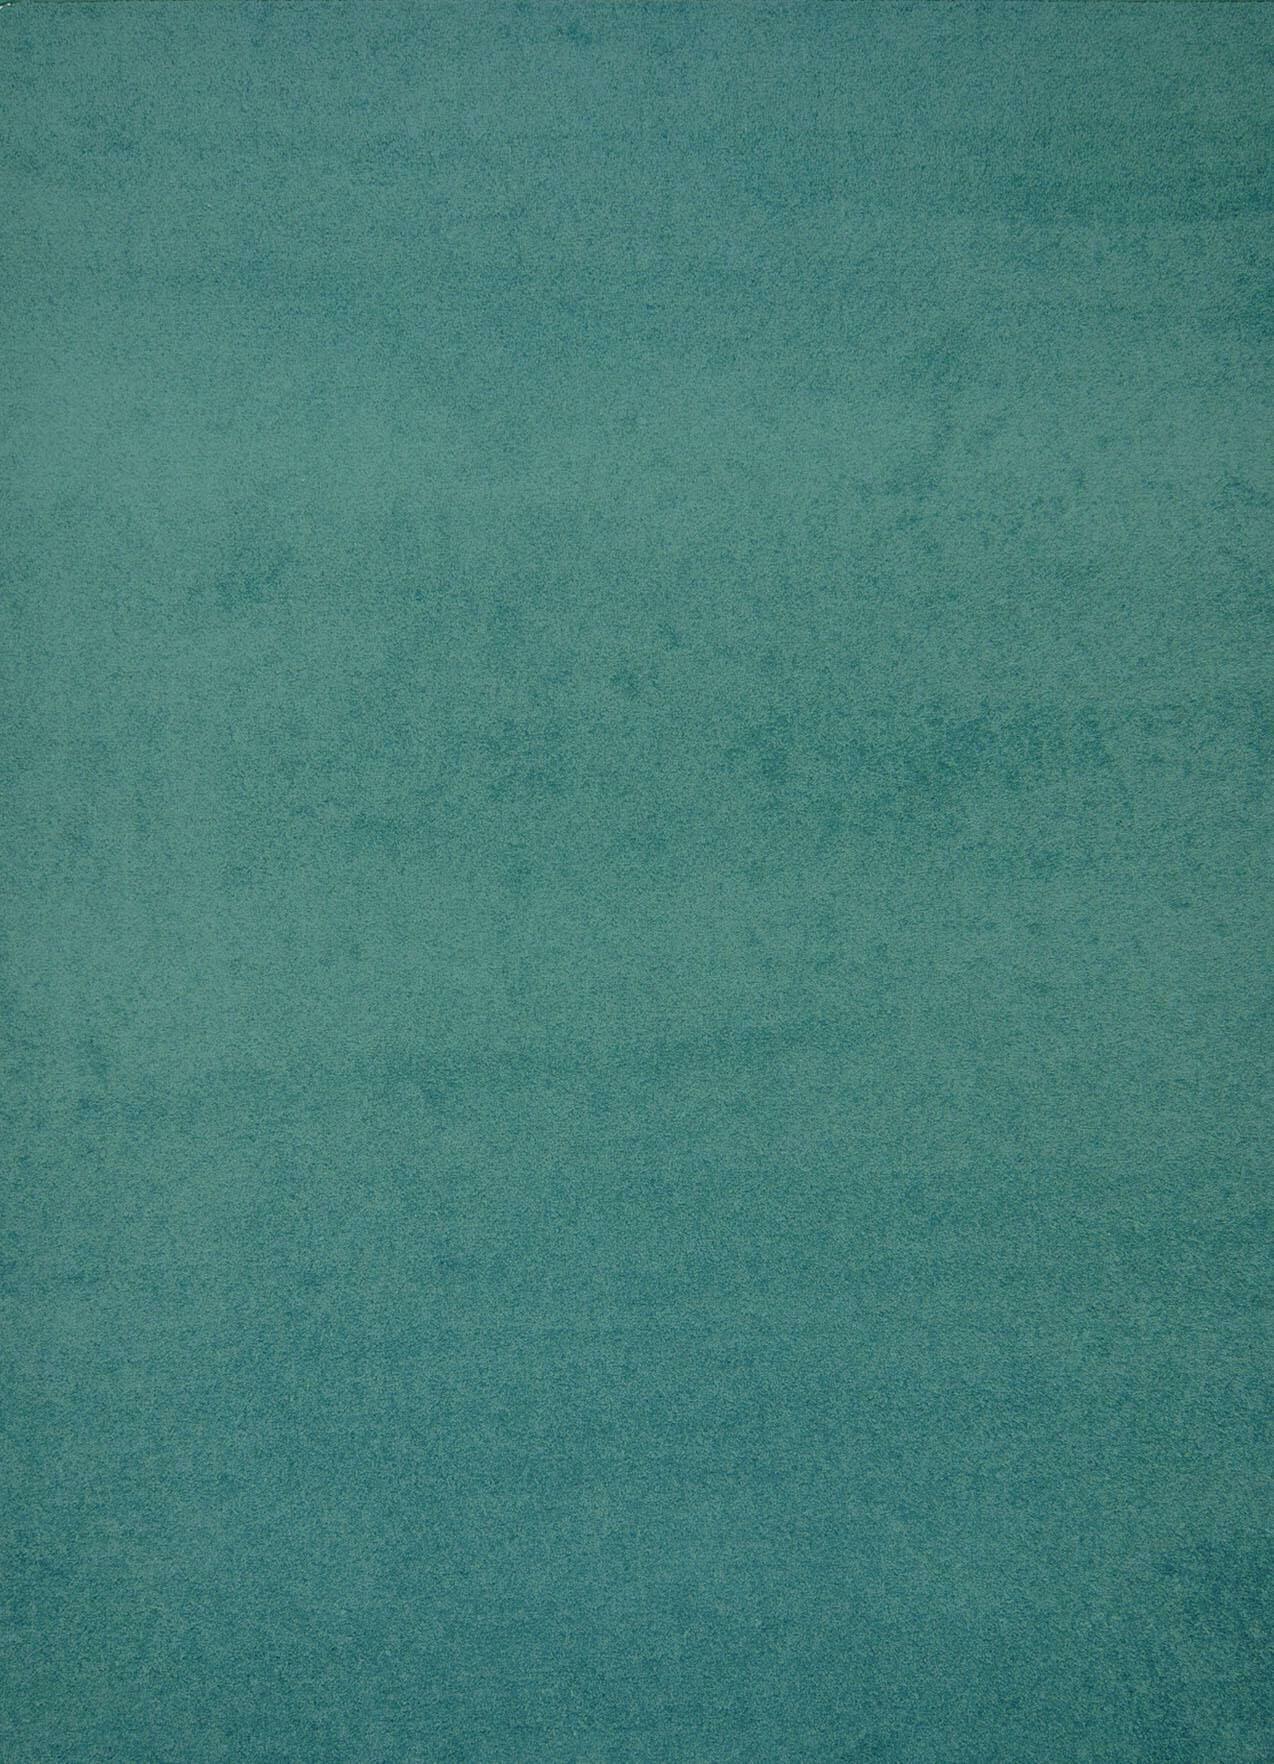 Henley Hand-Tufted Mint Area Rug Rug Size: 9' x 12'